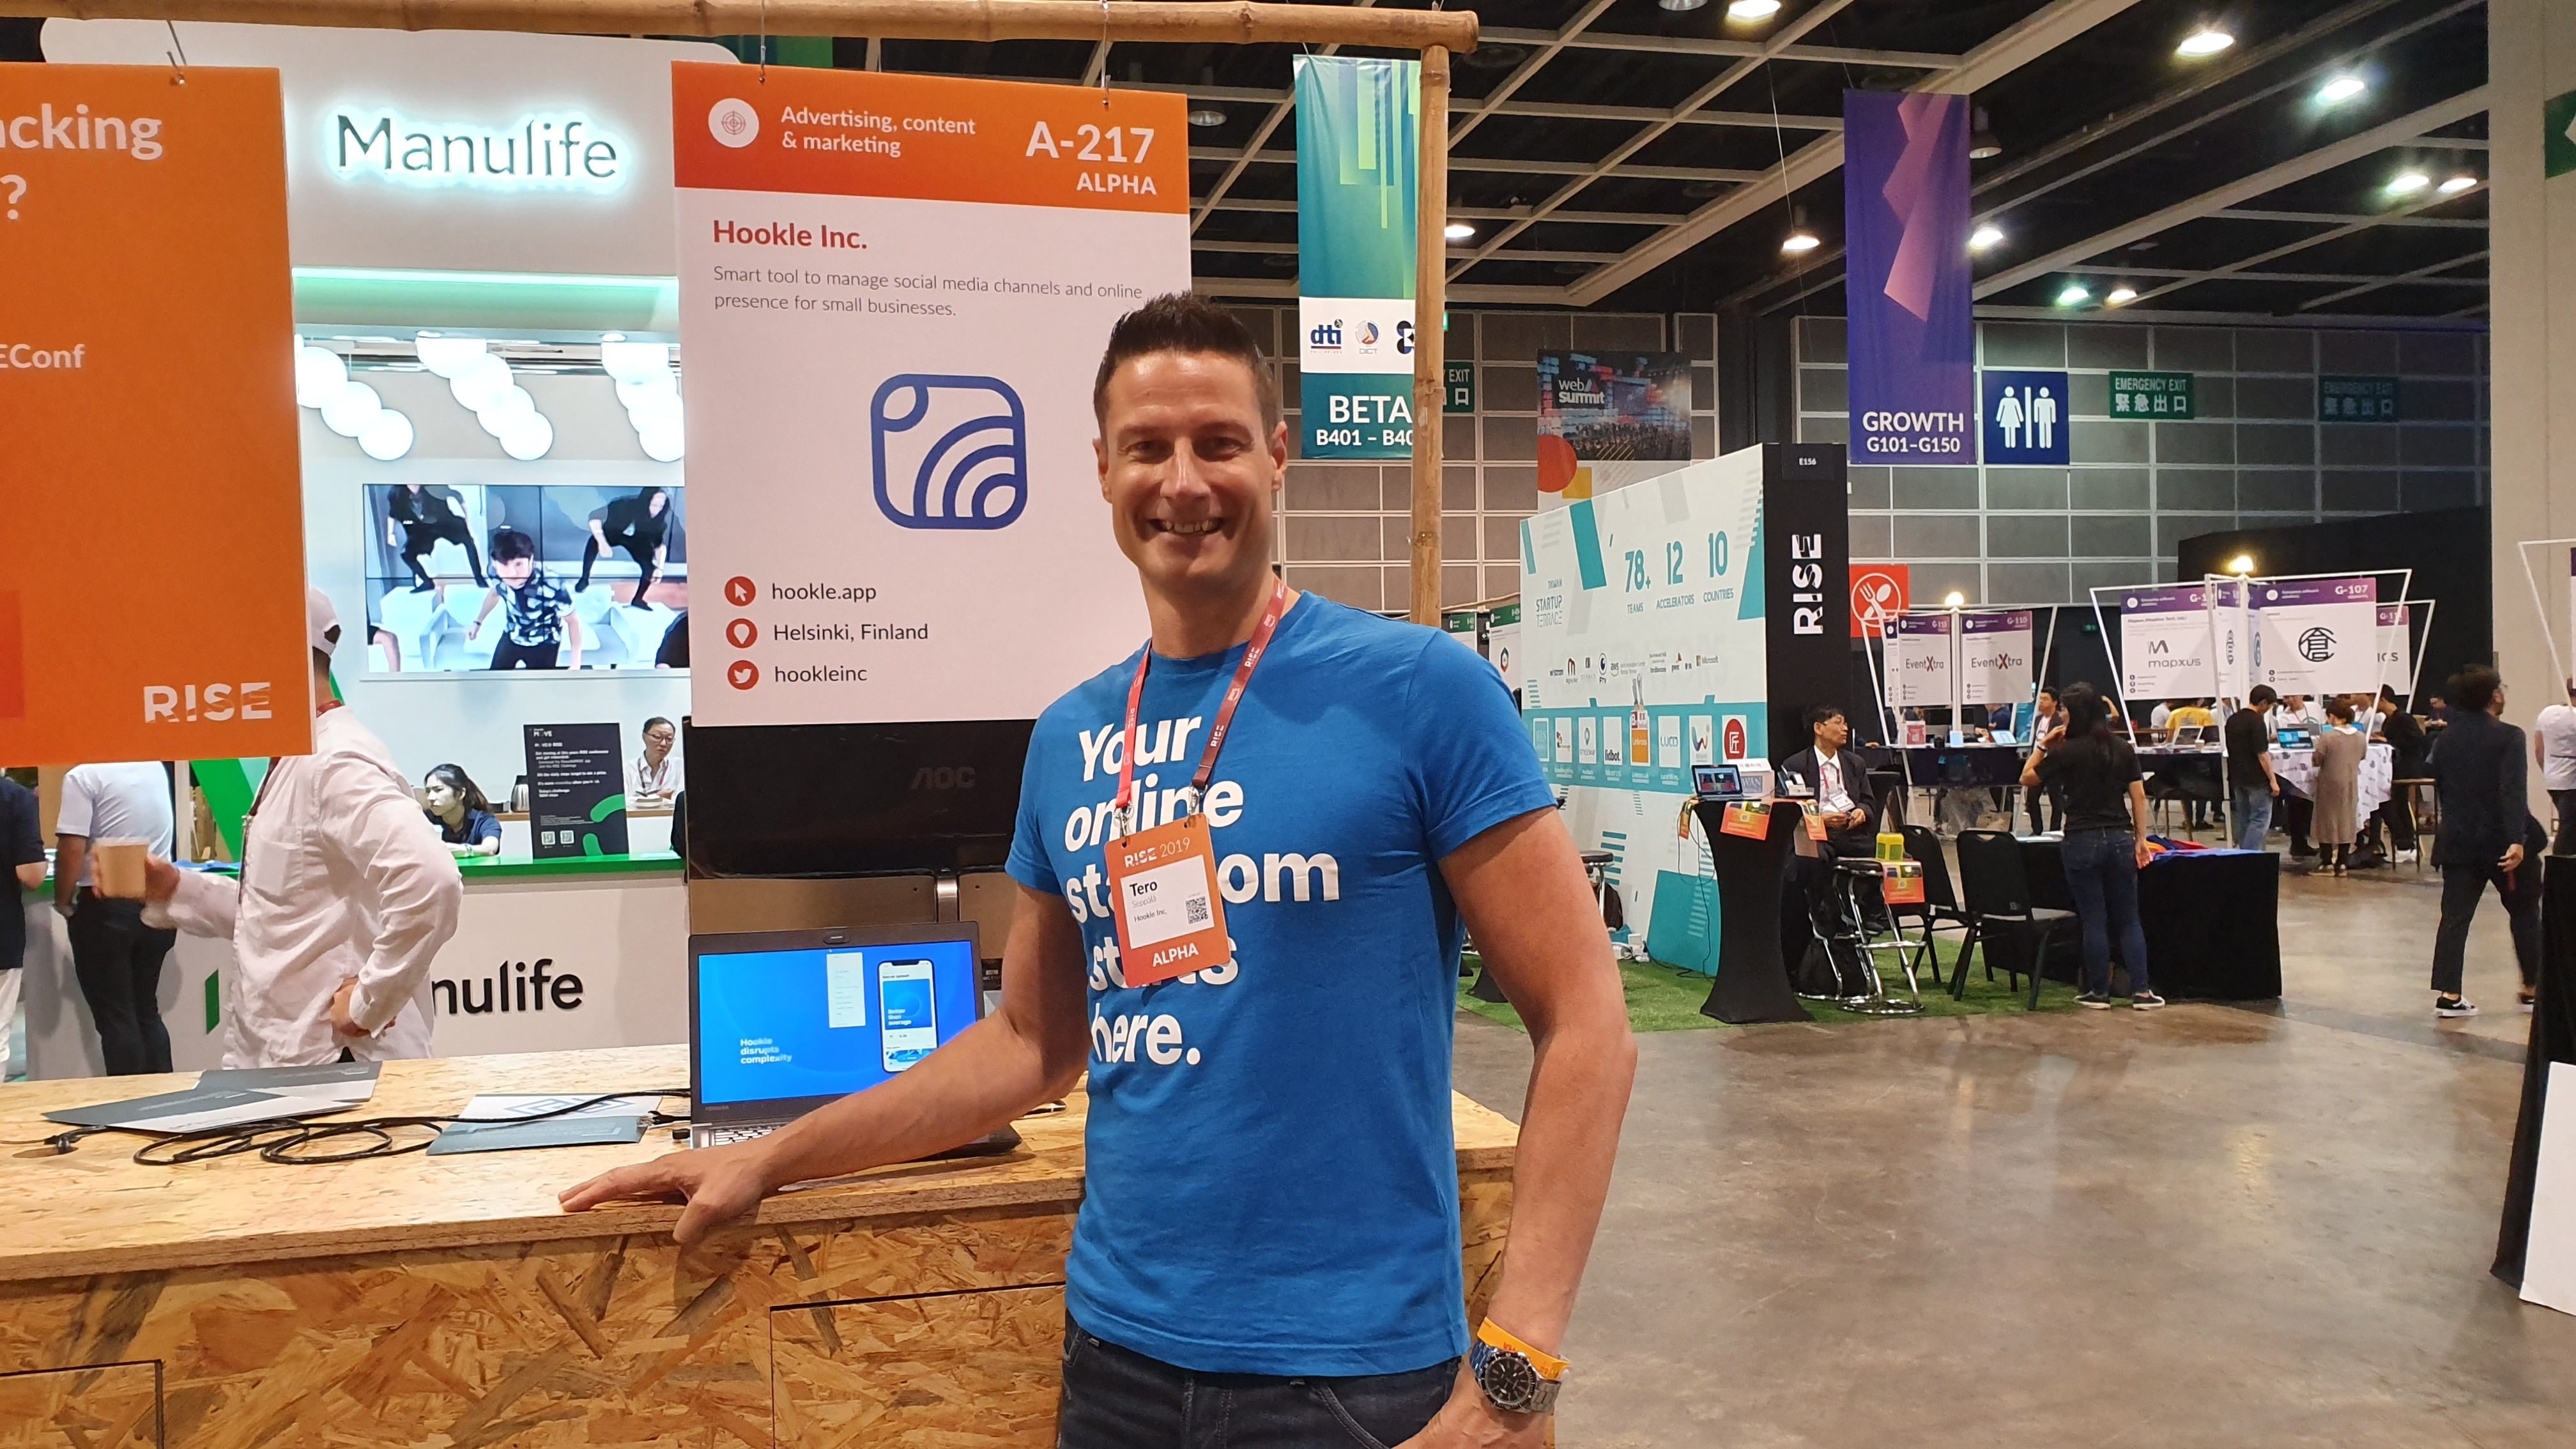 Hookle's CEO at the booth showcasing the App at Rise conference in Hong Kong on July 11th 2019.